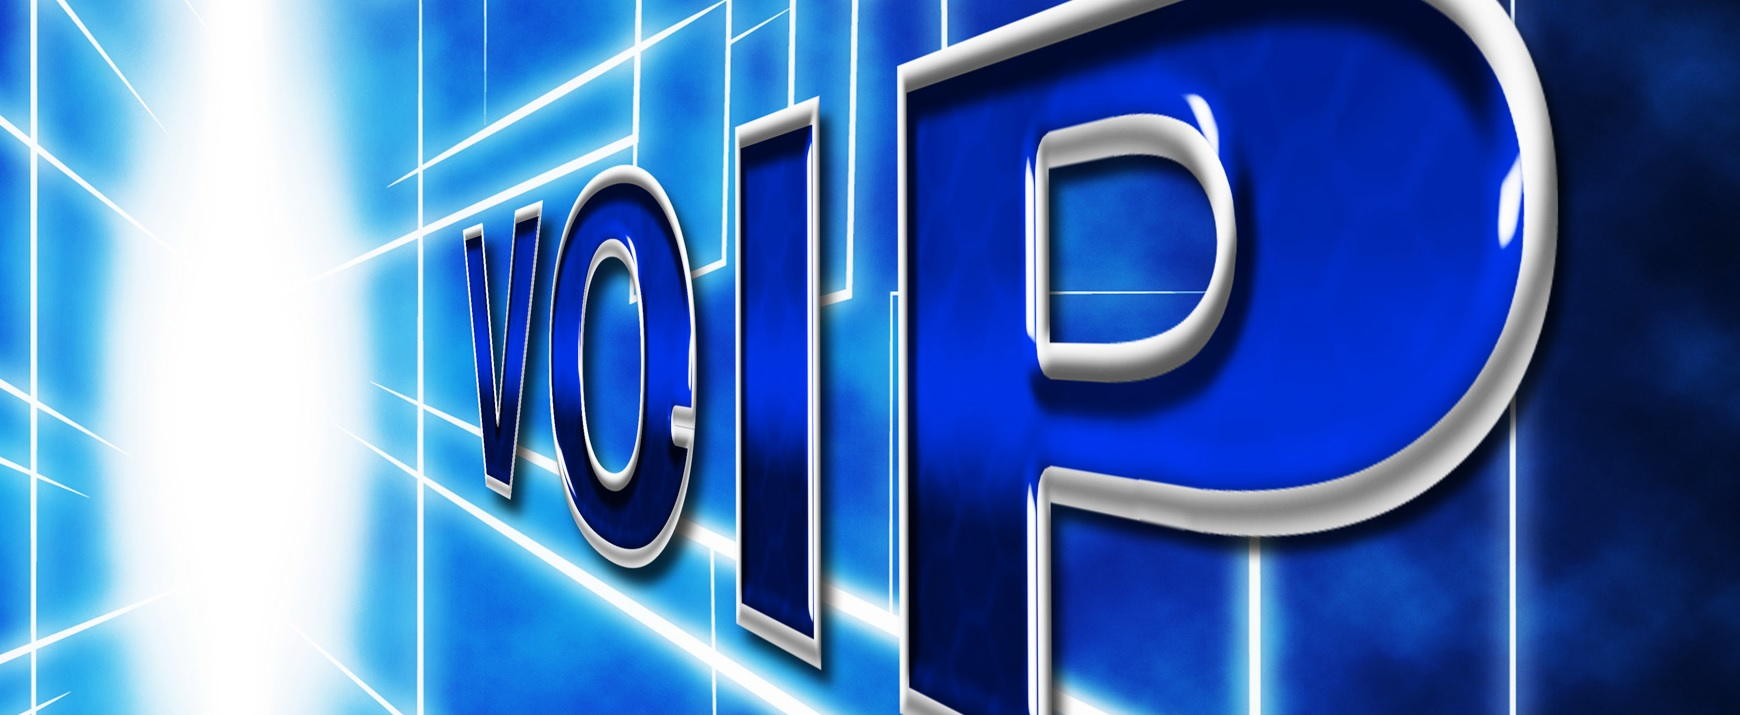 Why VoIP and how to select your Provider